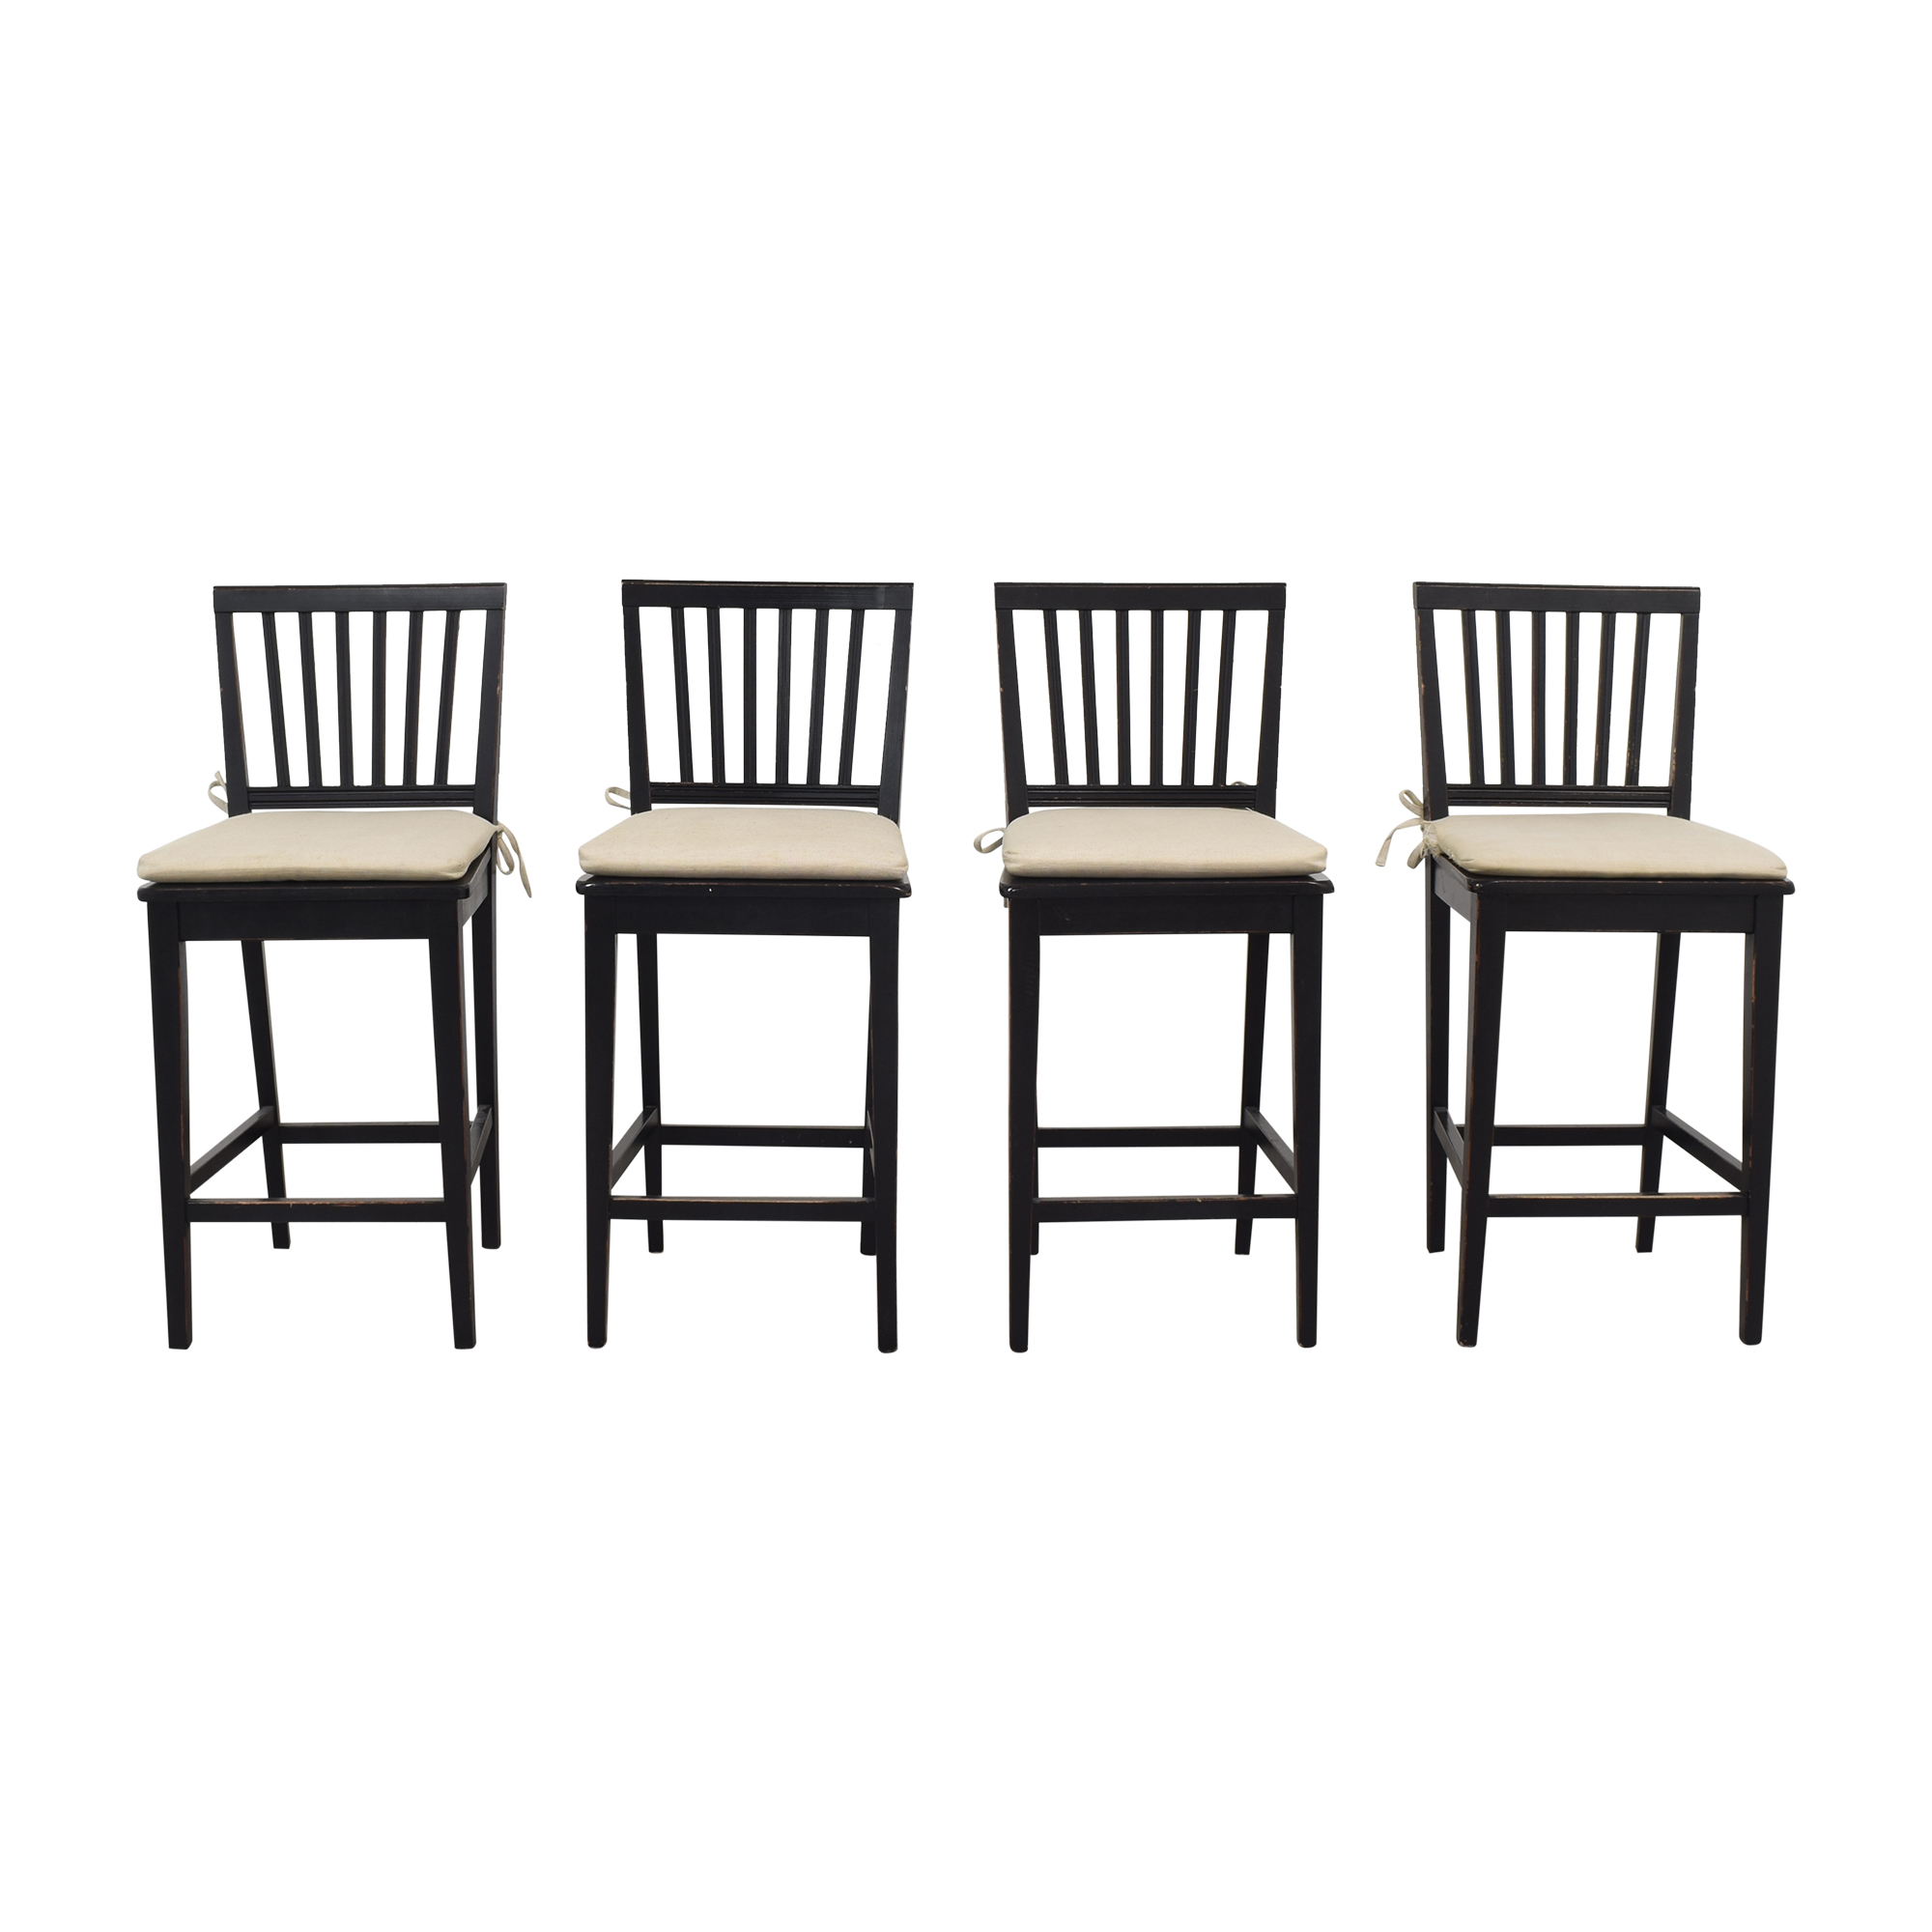 Crate & Barrel Crate & Barrel Buying & Design Counter Height Chairs ct